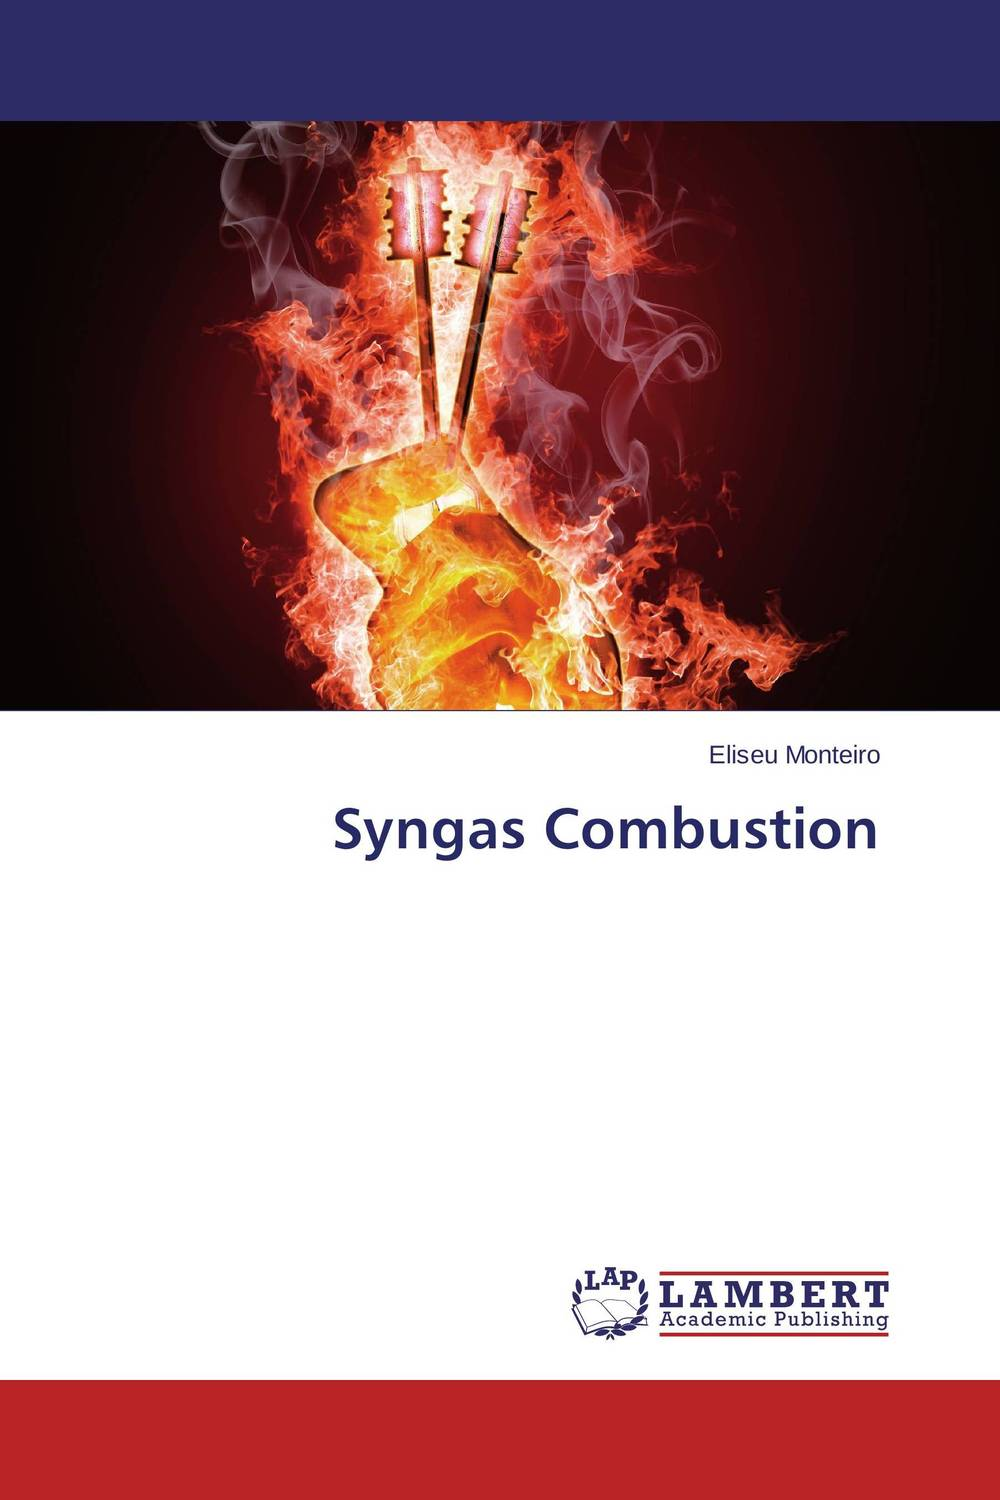 Syngas Combustion turbulent jet flames from modelling to simulations